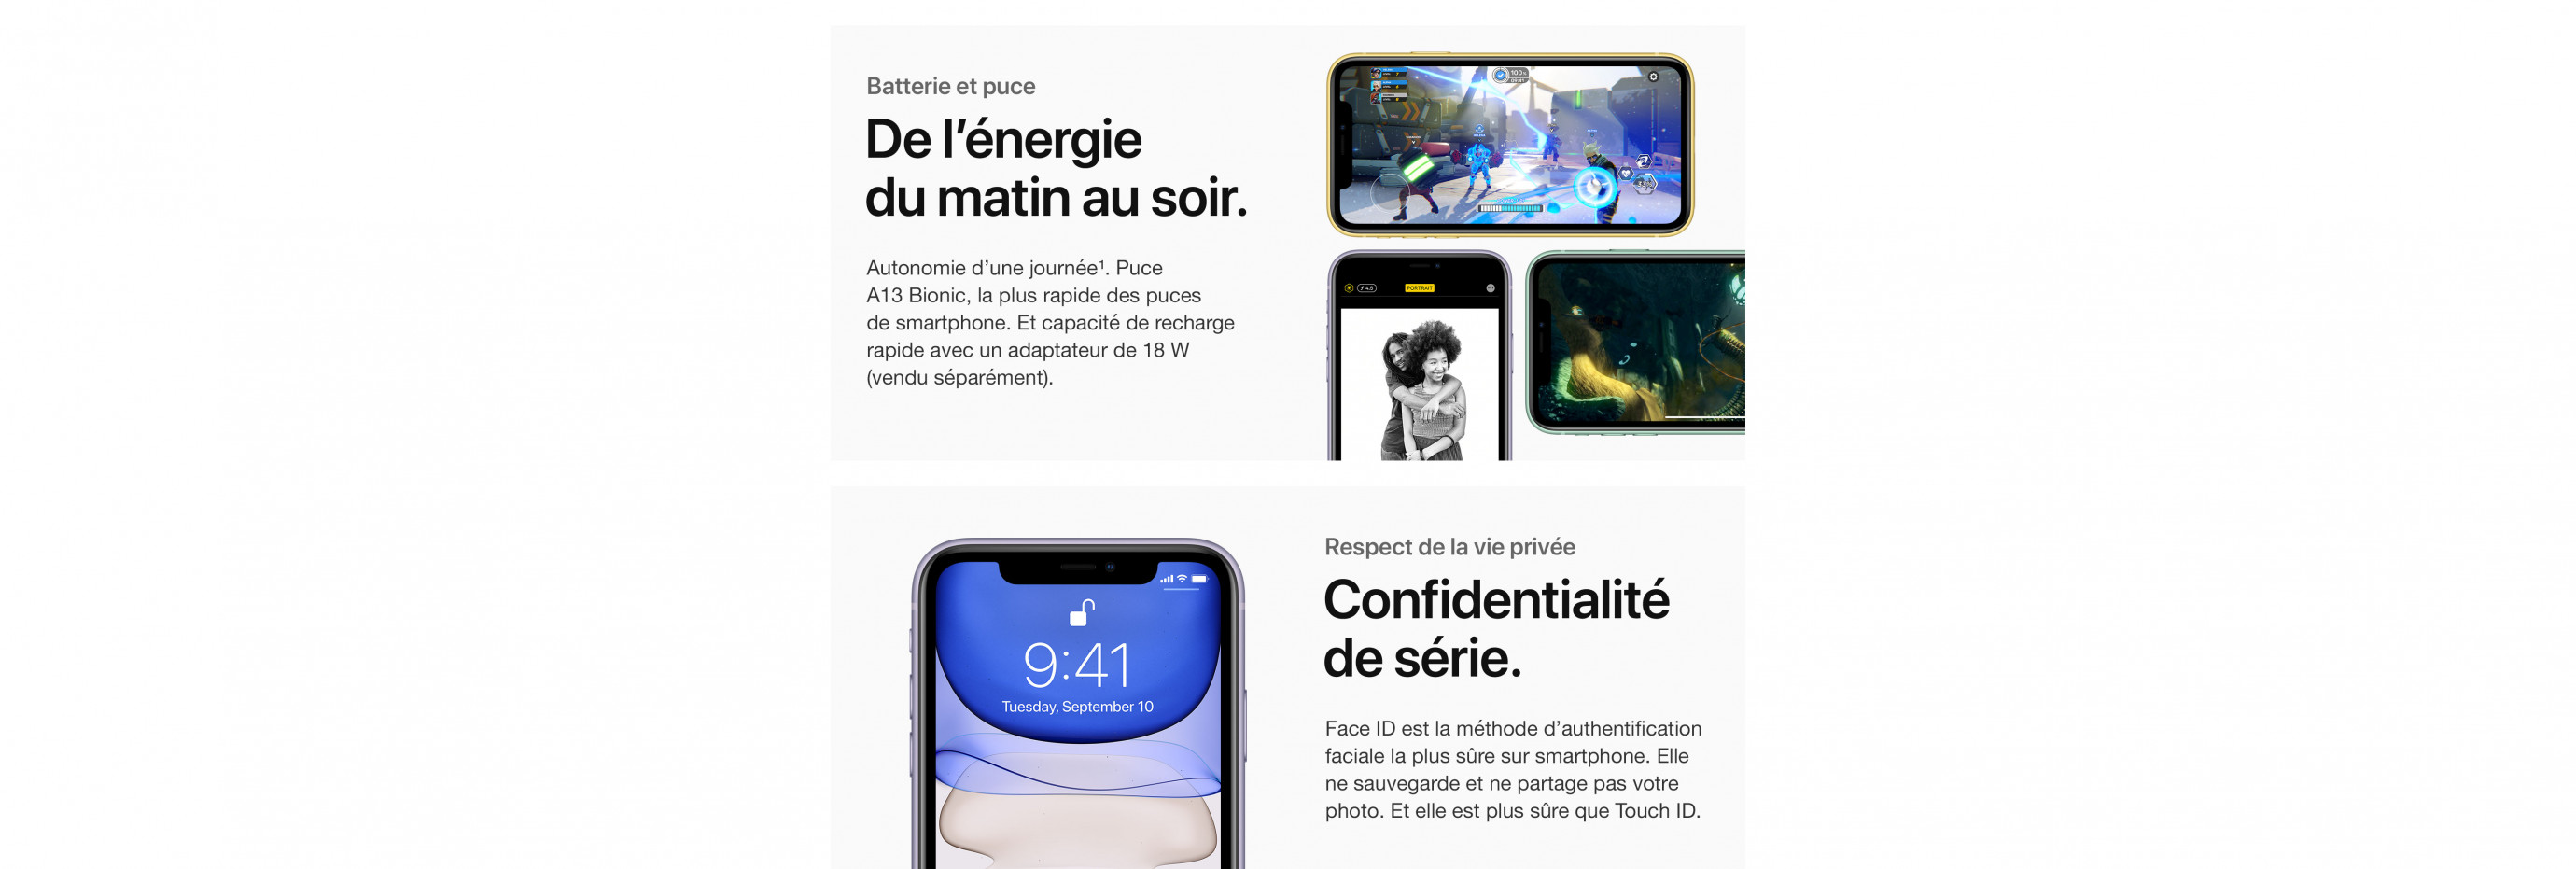 iPhone11-productpage-fr_01_07.jpg